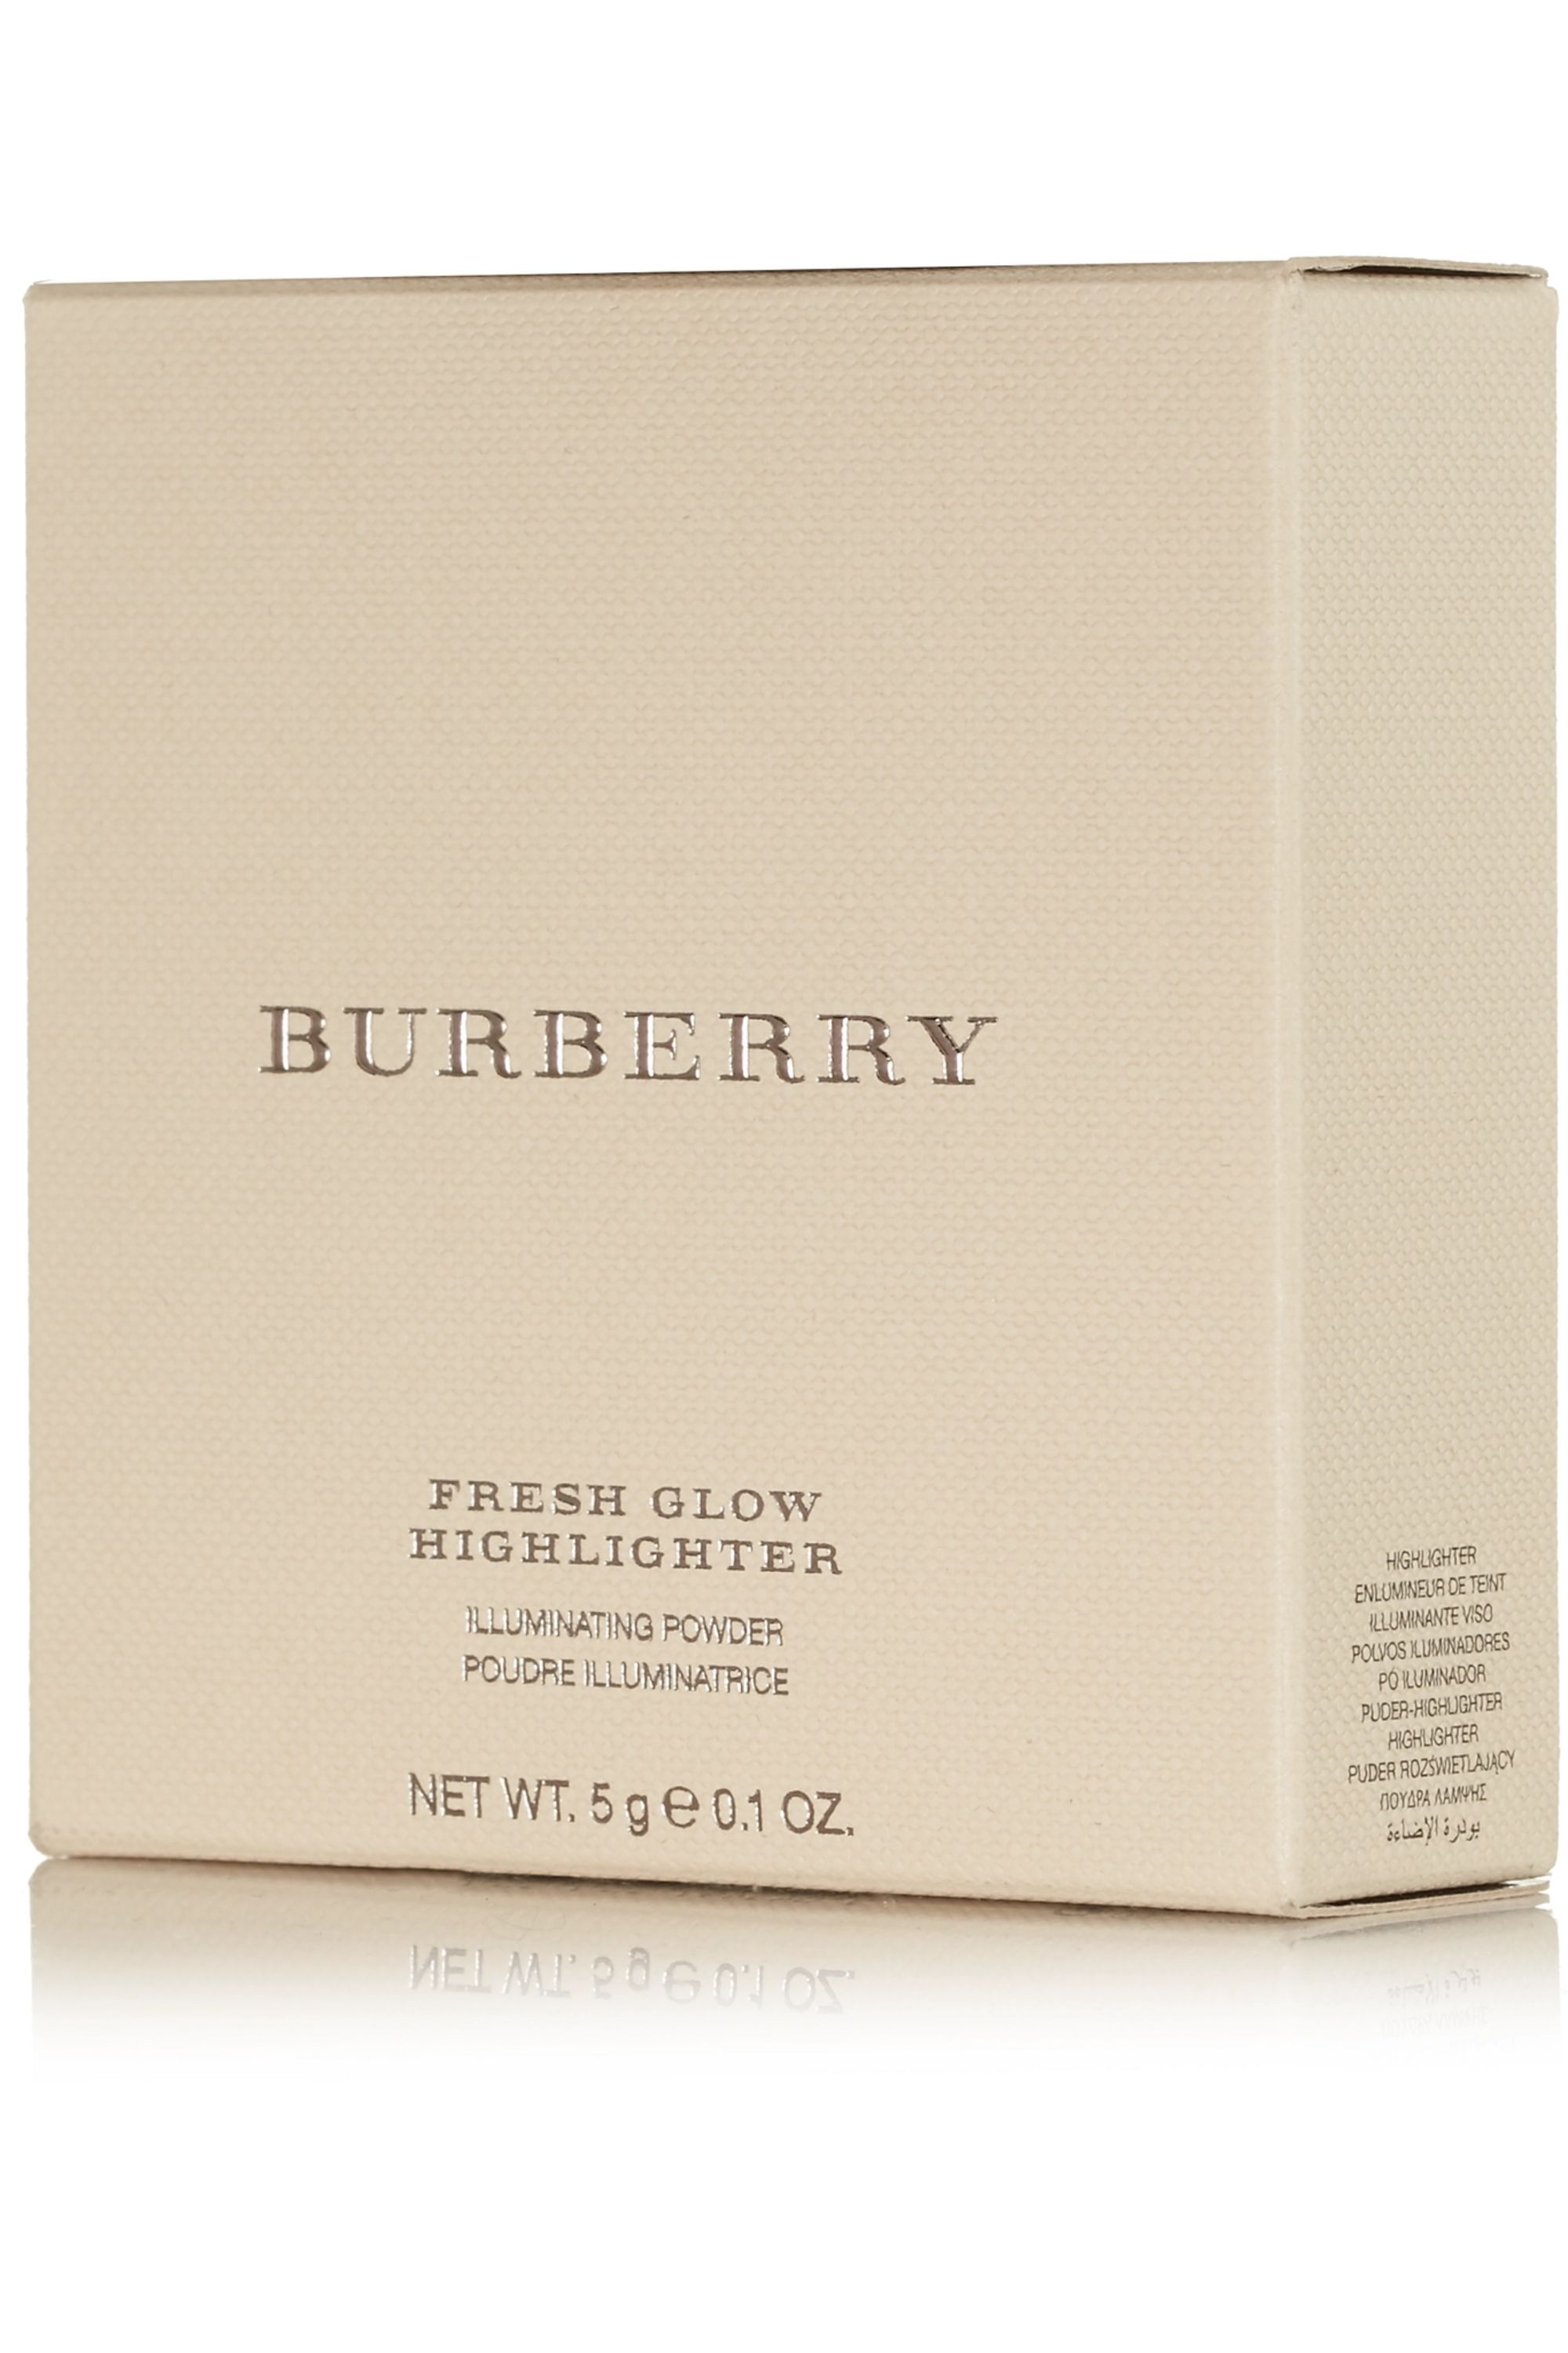 Burberry Beauty Fresh Glow Highlighter - Pink Pearl No.03